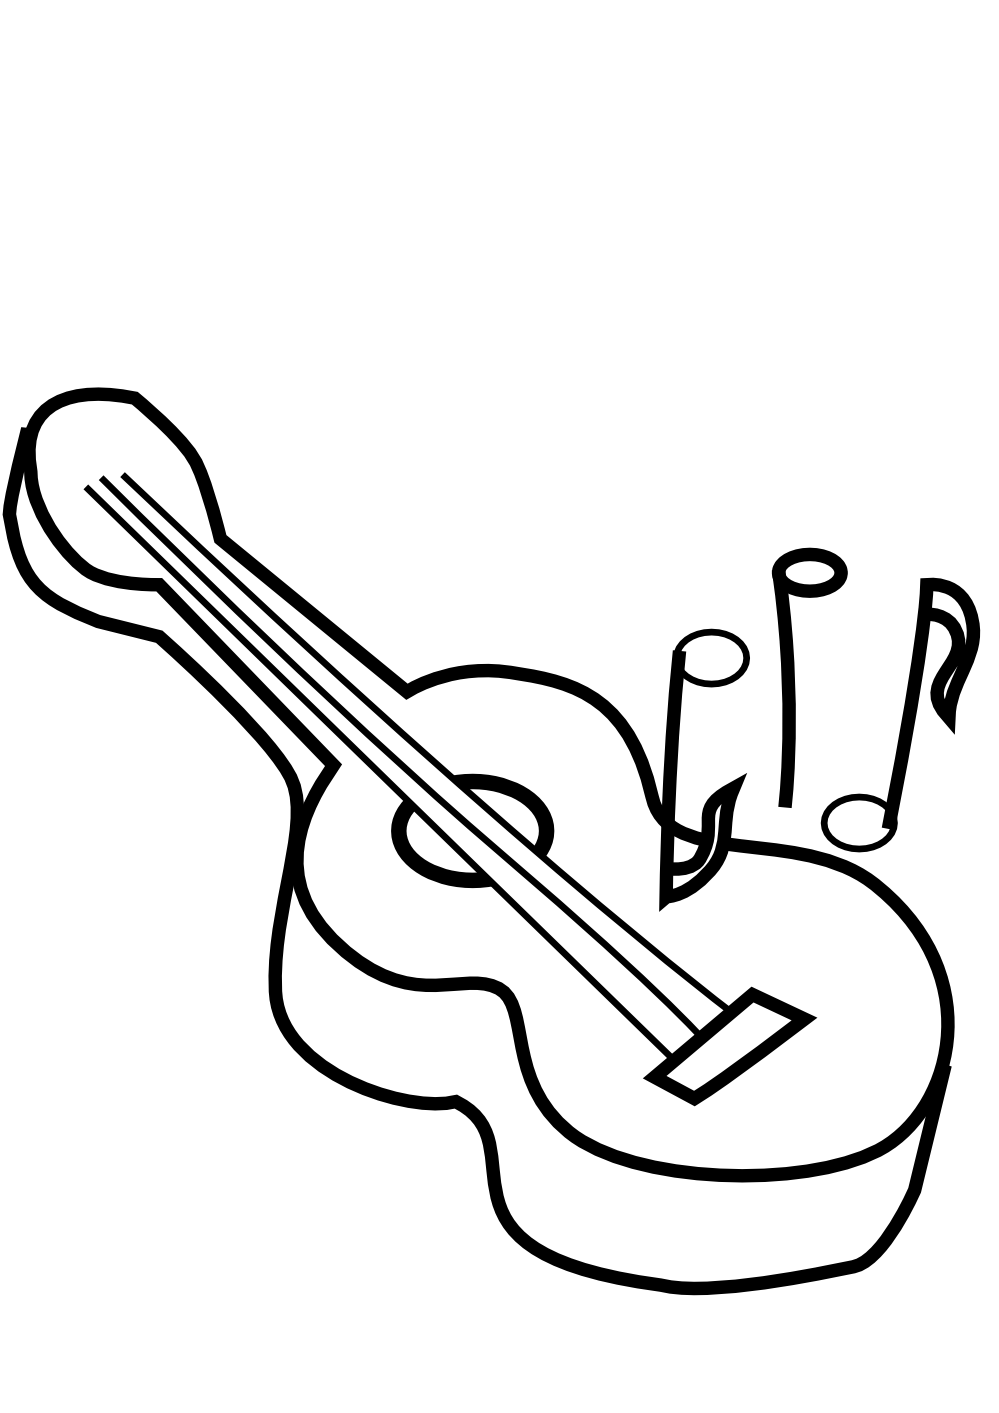 Clip art black and. Wing clipart guitar